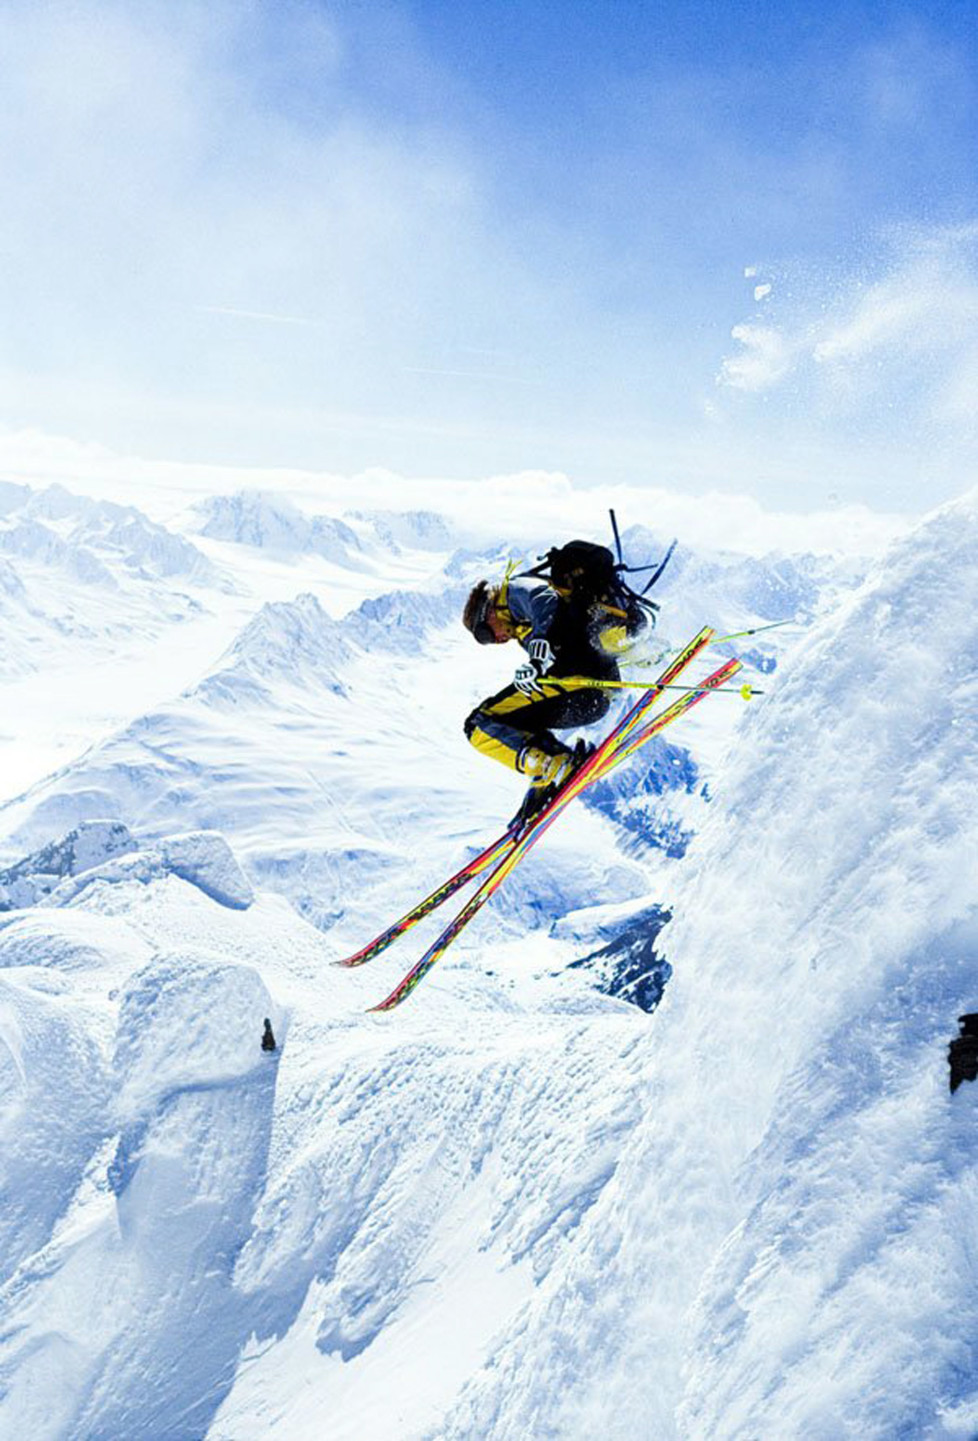 """American extreme skier Scott Schmidt pushing the envelope in the Chugach Mountains, near Valdez Alaska, from the movie """"Steep."""" (Photo by Chris Noble/Anchorage Daily News/MCT via Getty Images)"""